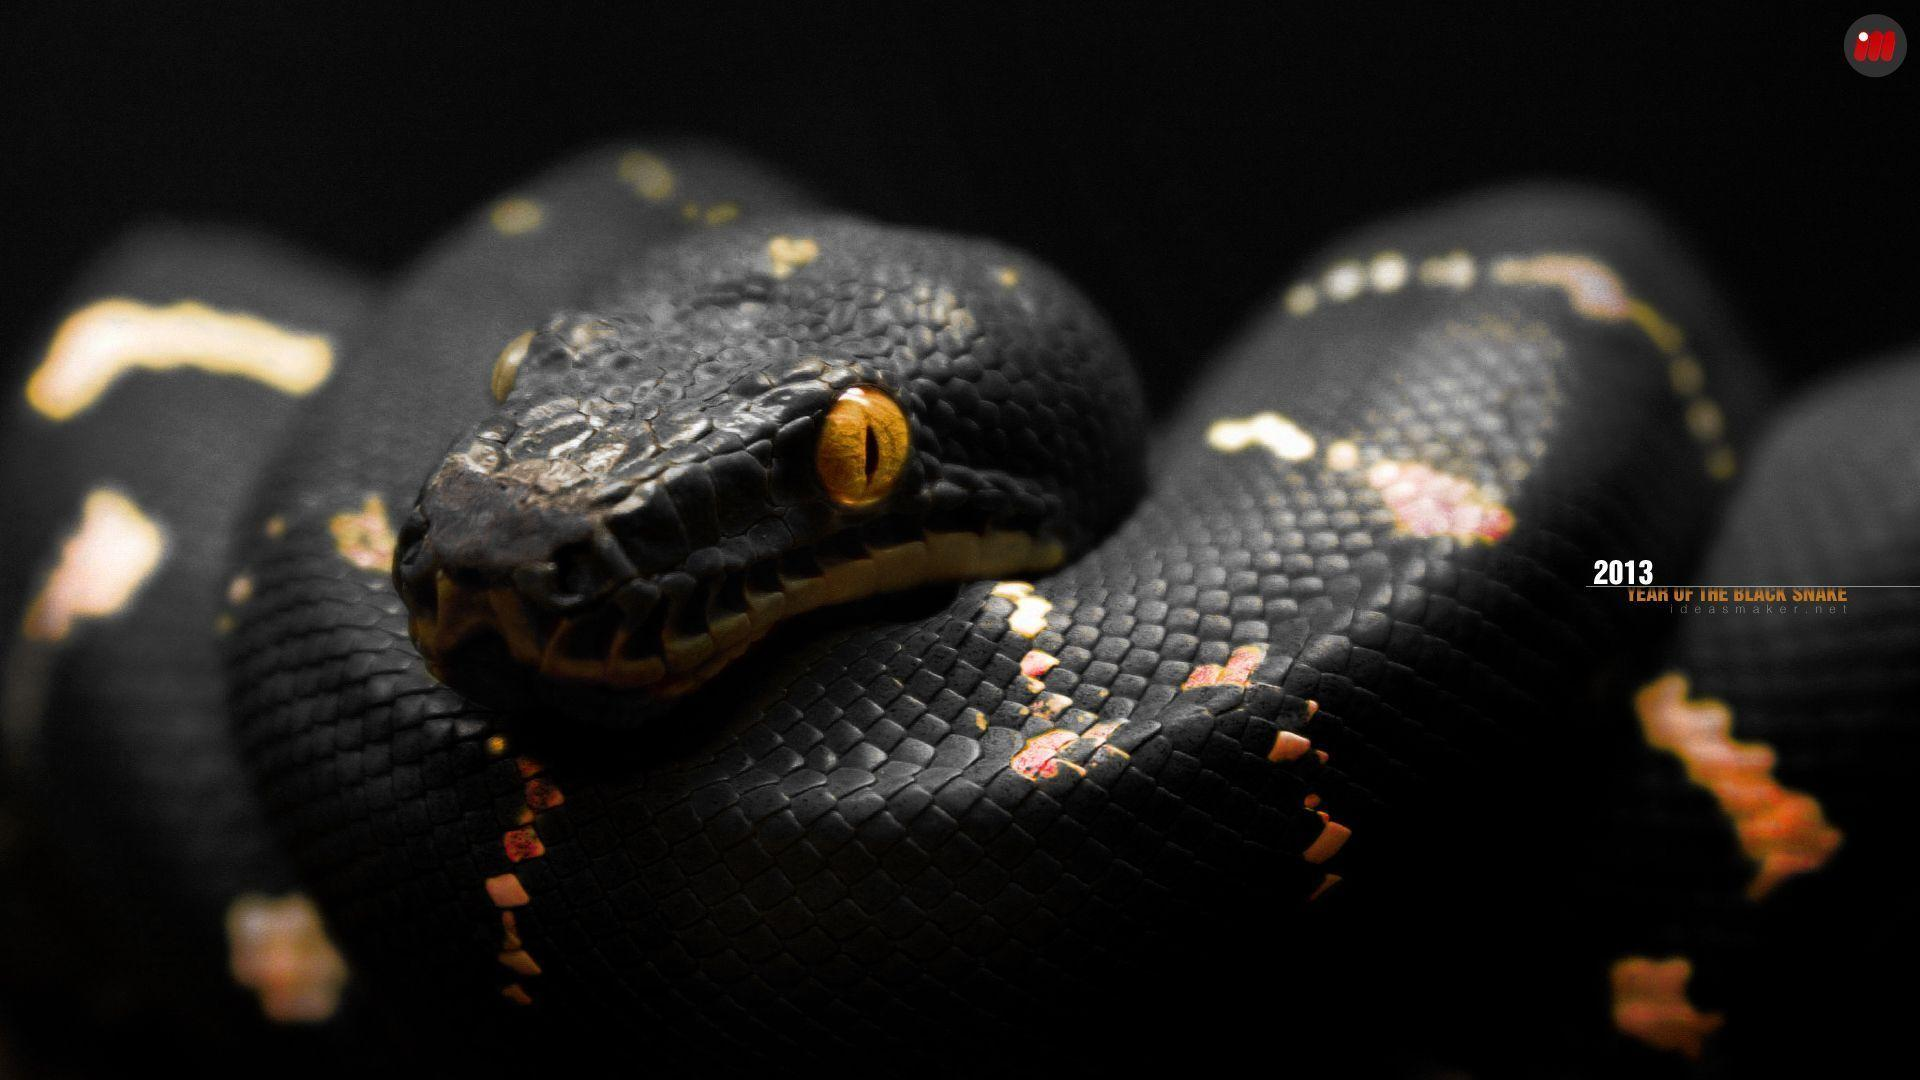 Snake Wallpapers - Wallpaper Cave